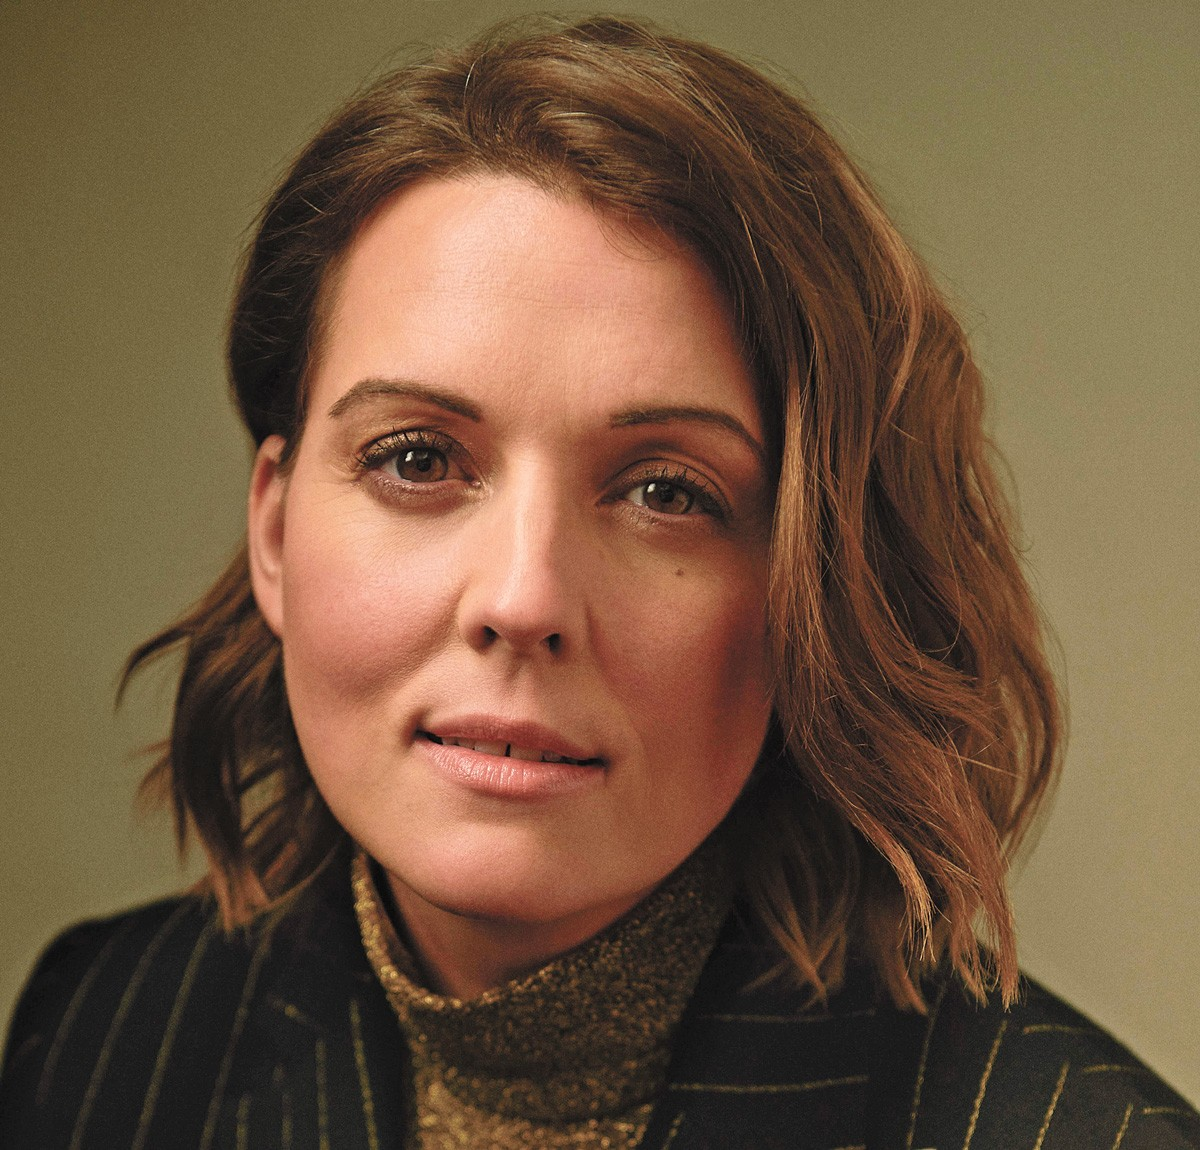 Brandi Carlile is playing shows at KettleHouse Amphitheater in Montana July 2-4 and at the Gorge on Aug. 14.